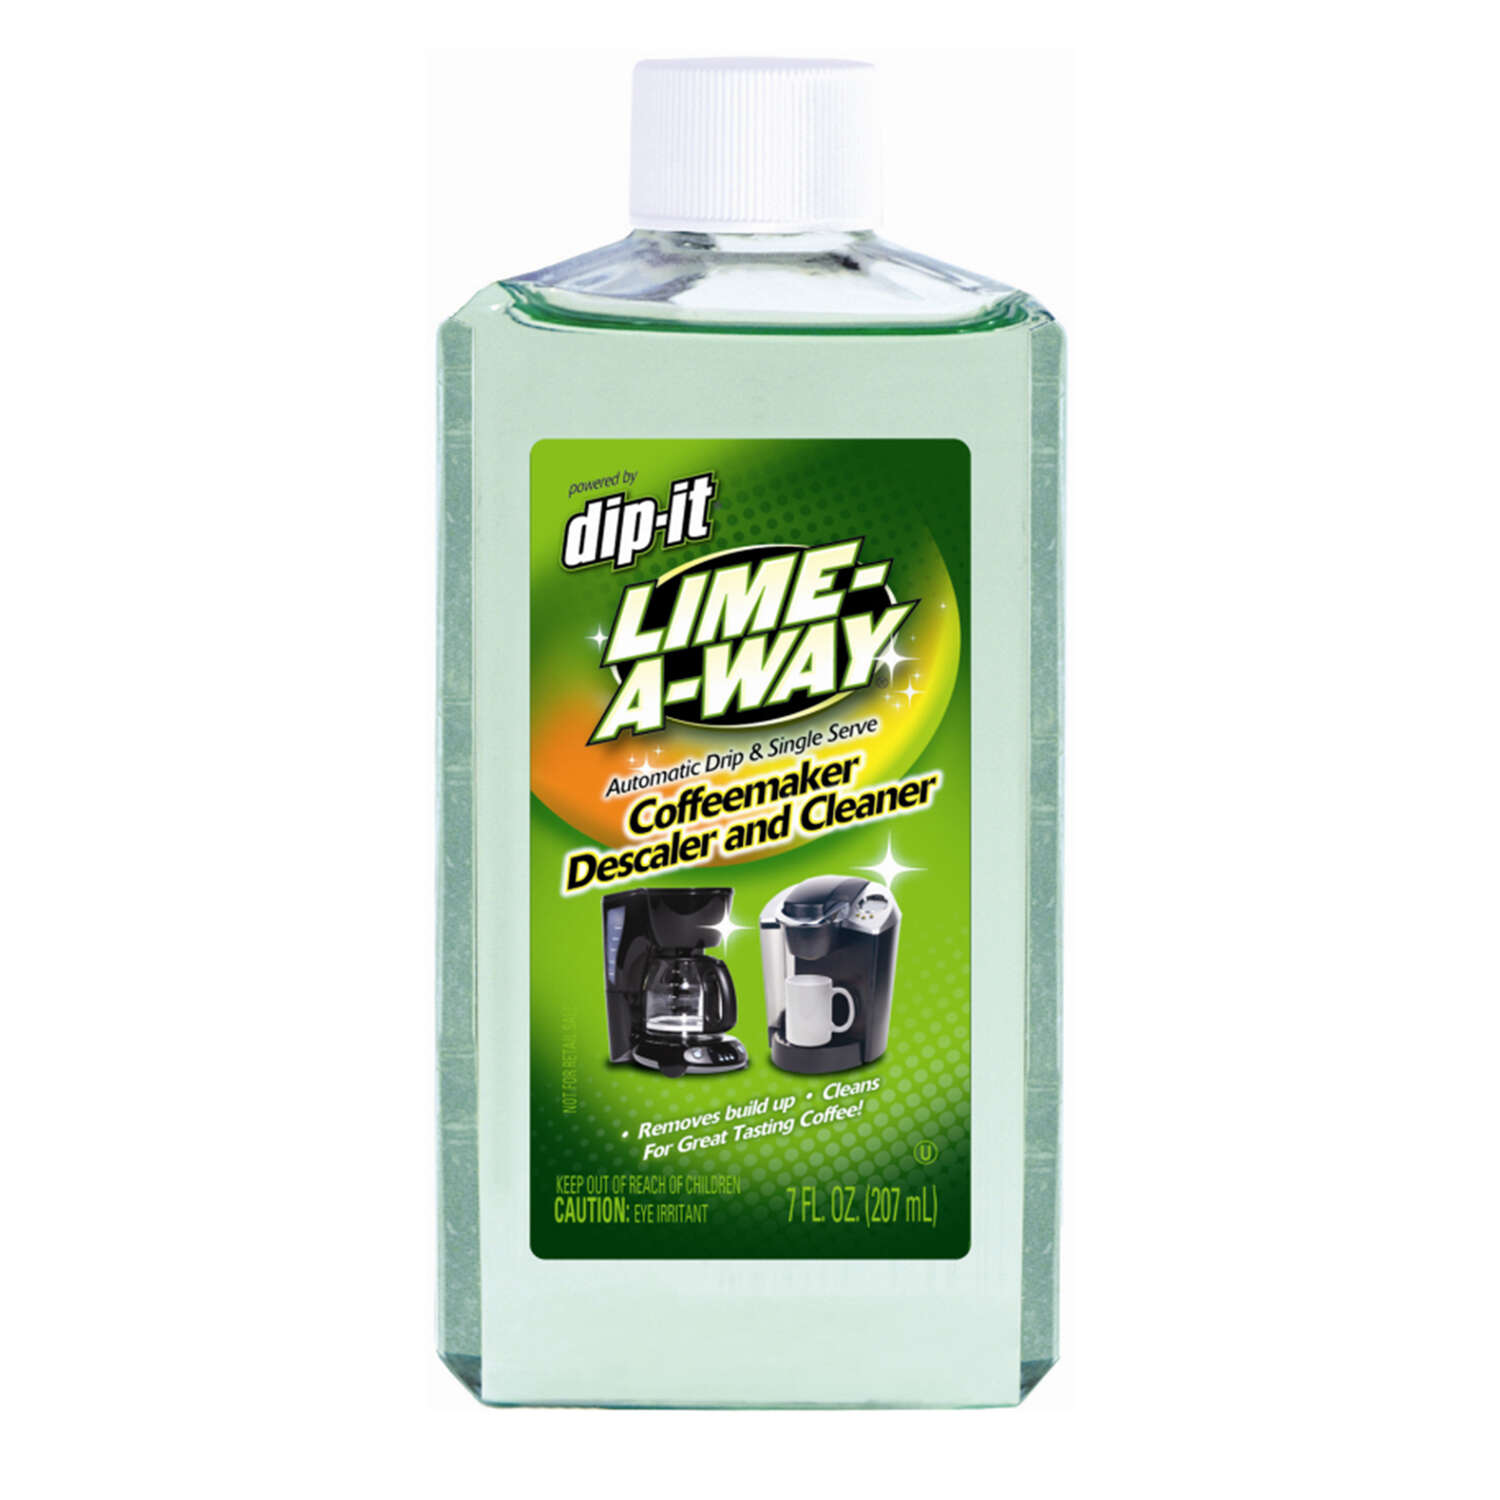 Lime-A-Way  Dip-It  Coffee Maker Cleaner  7 oz. Liquid